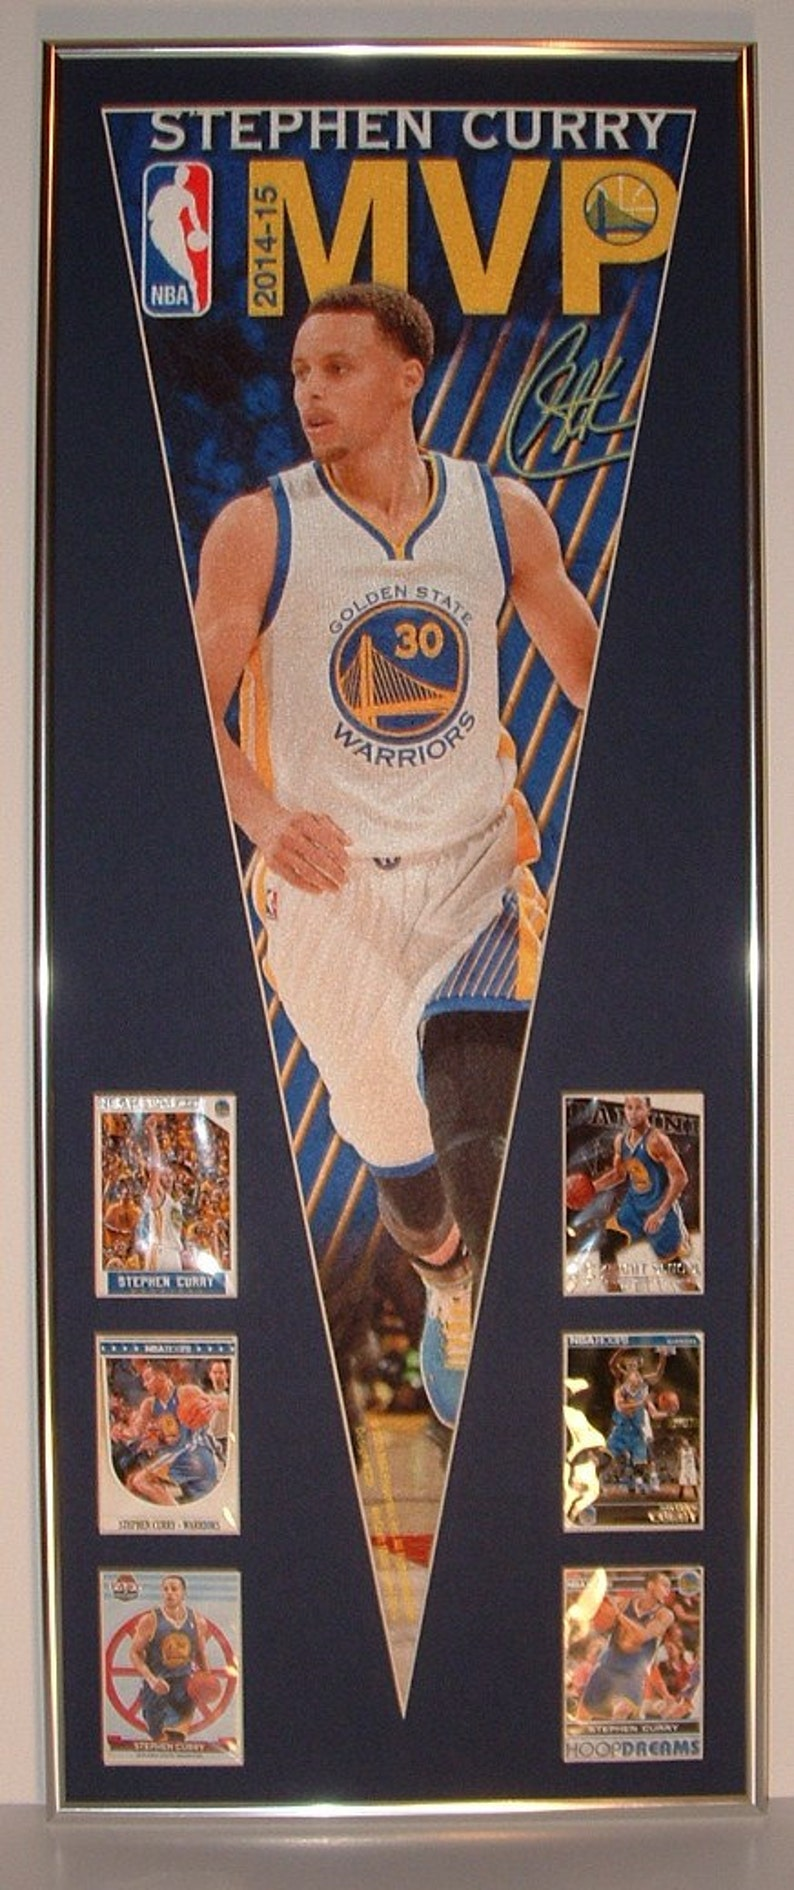 Nba Basketball Golden State Warriors Stephen Curry Pennant Cardscustom Framed